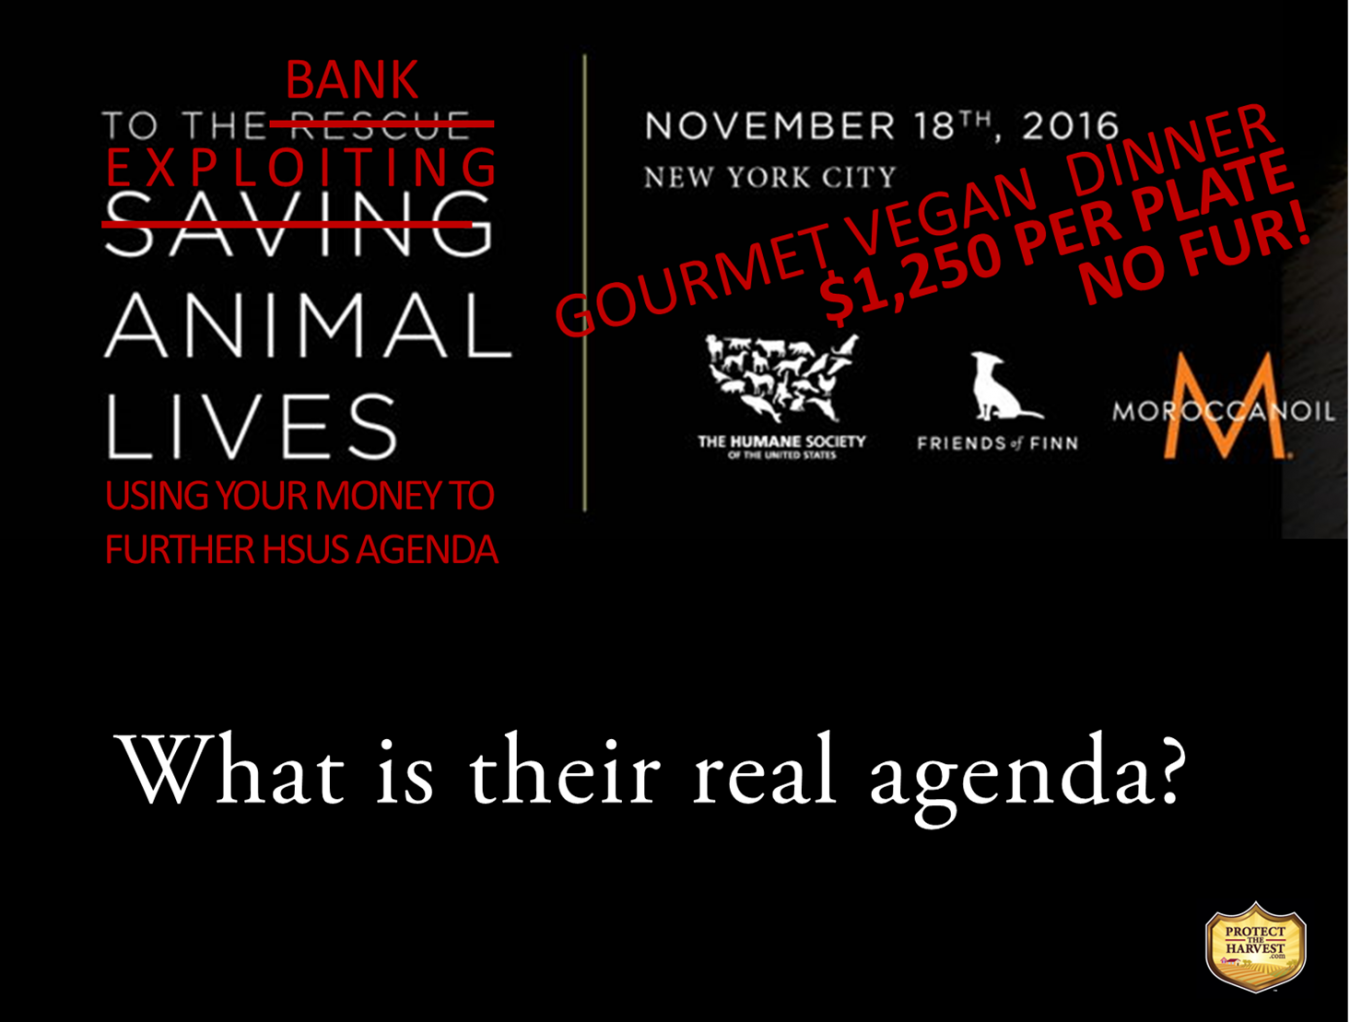 HSUS - To The Rescue - What Is Their Real Agenda?